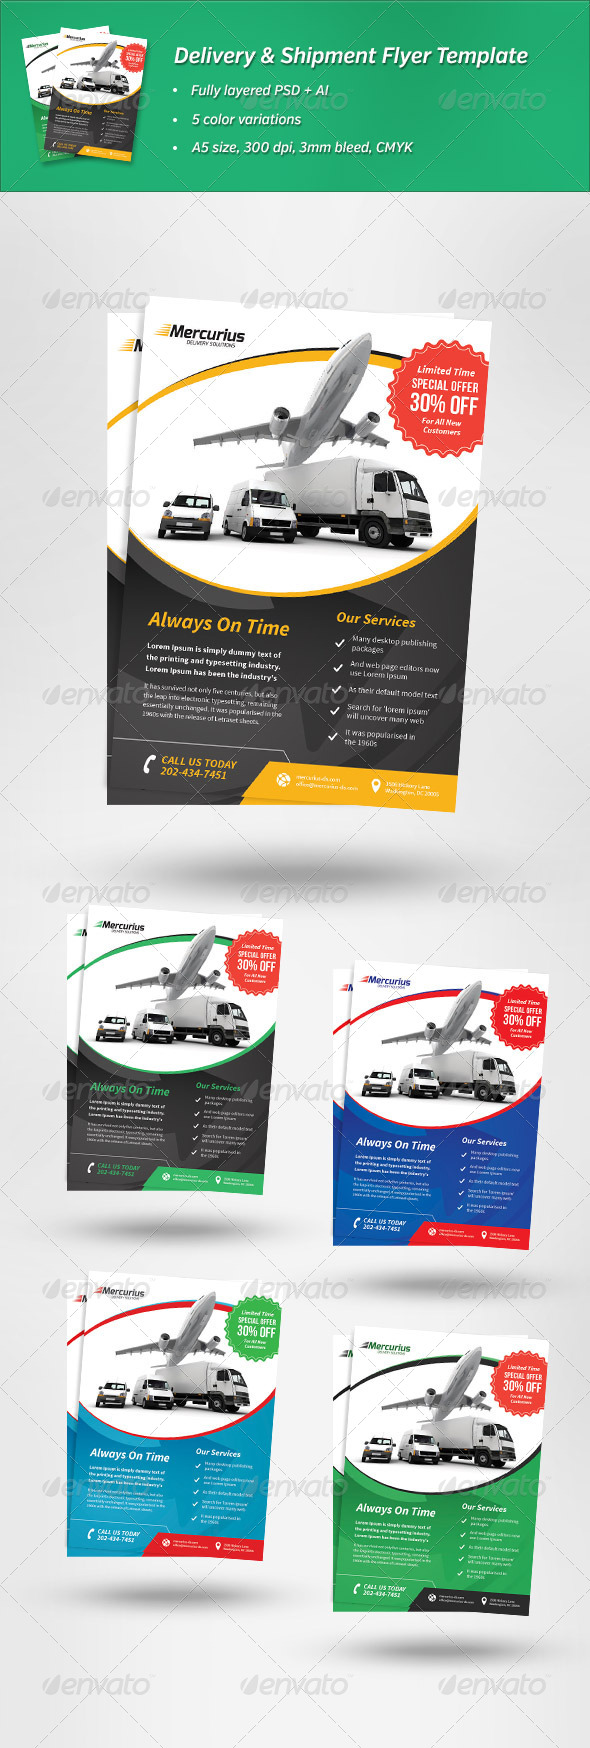 GraphicRiver Delivery & Shipment Flyer Template 6653107